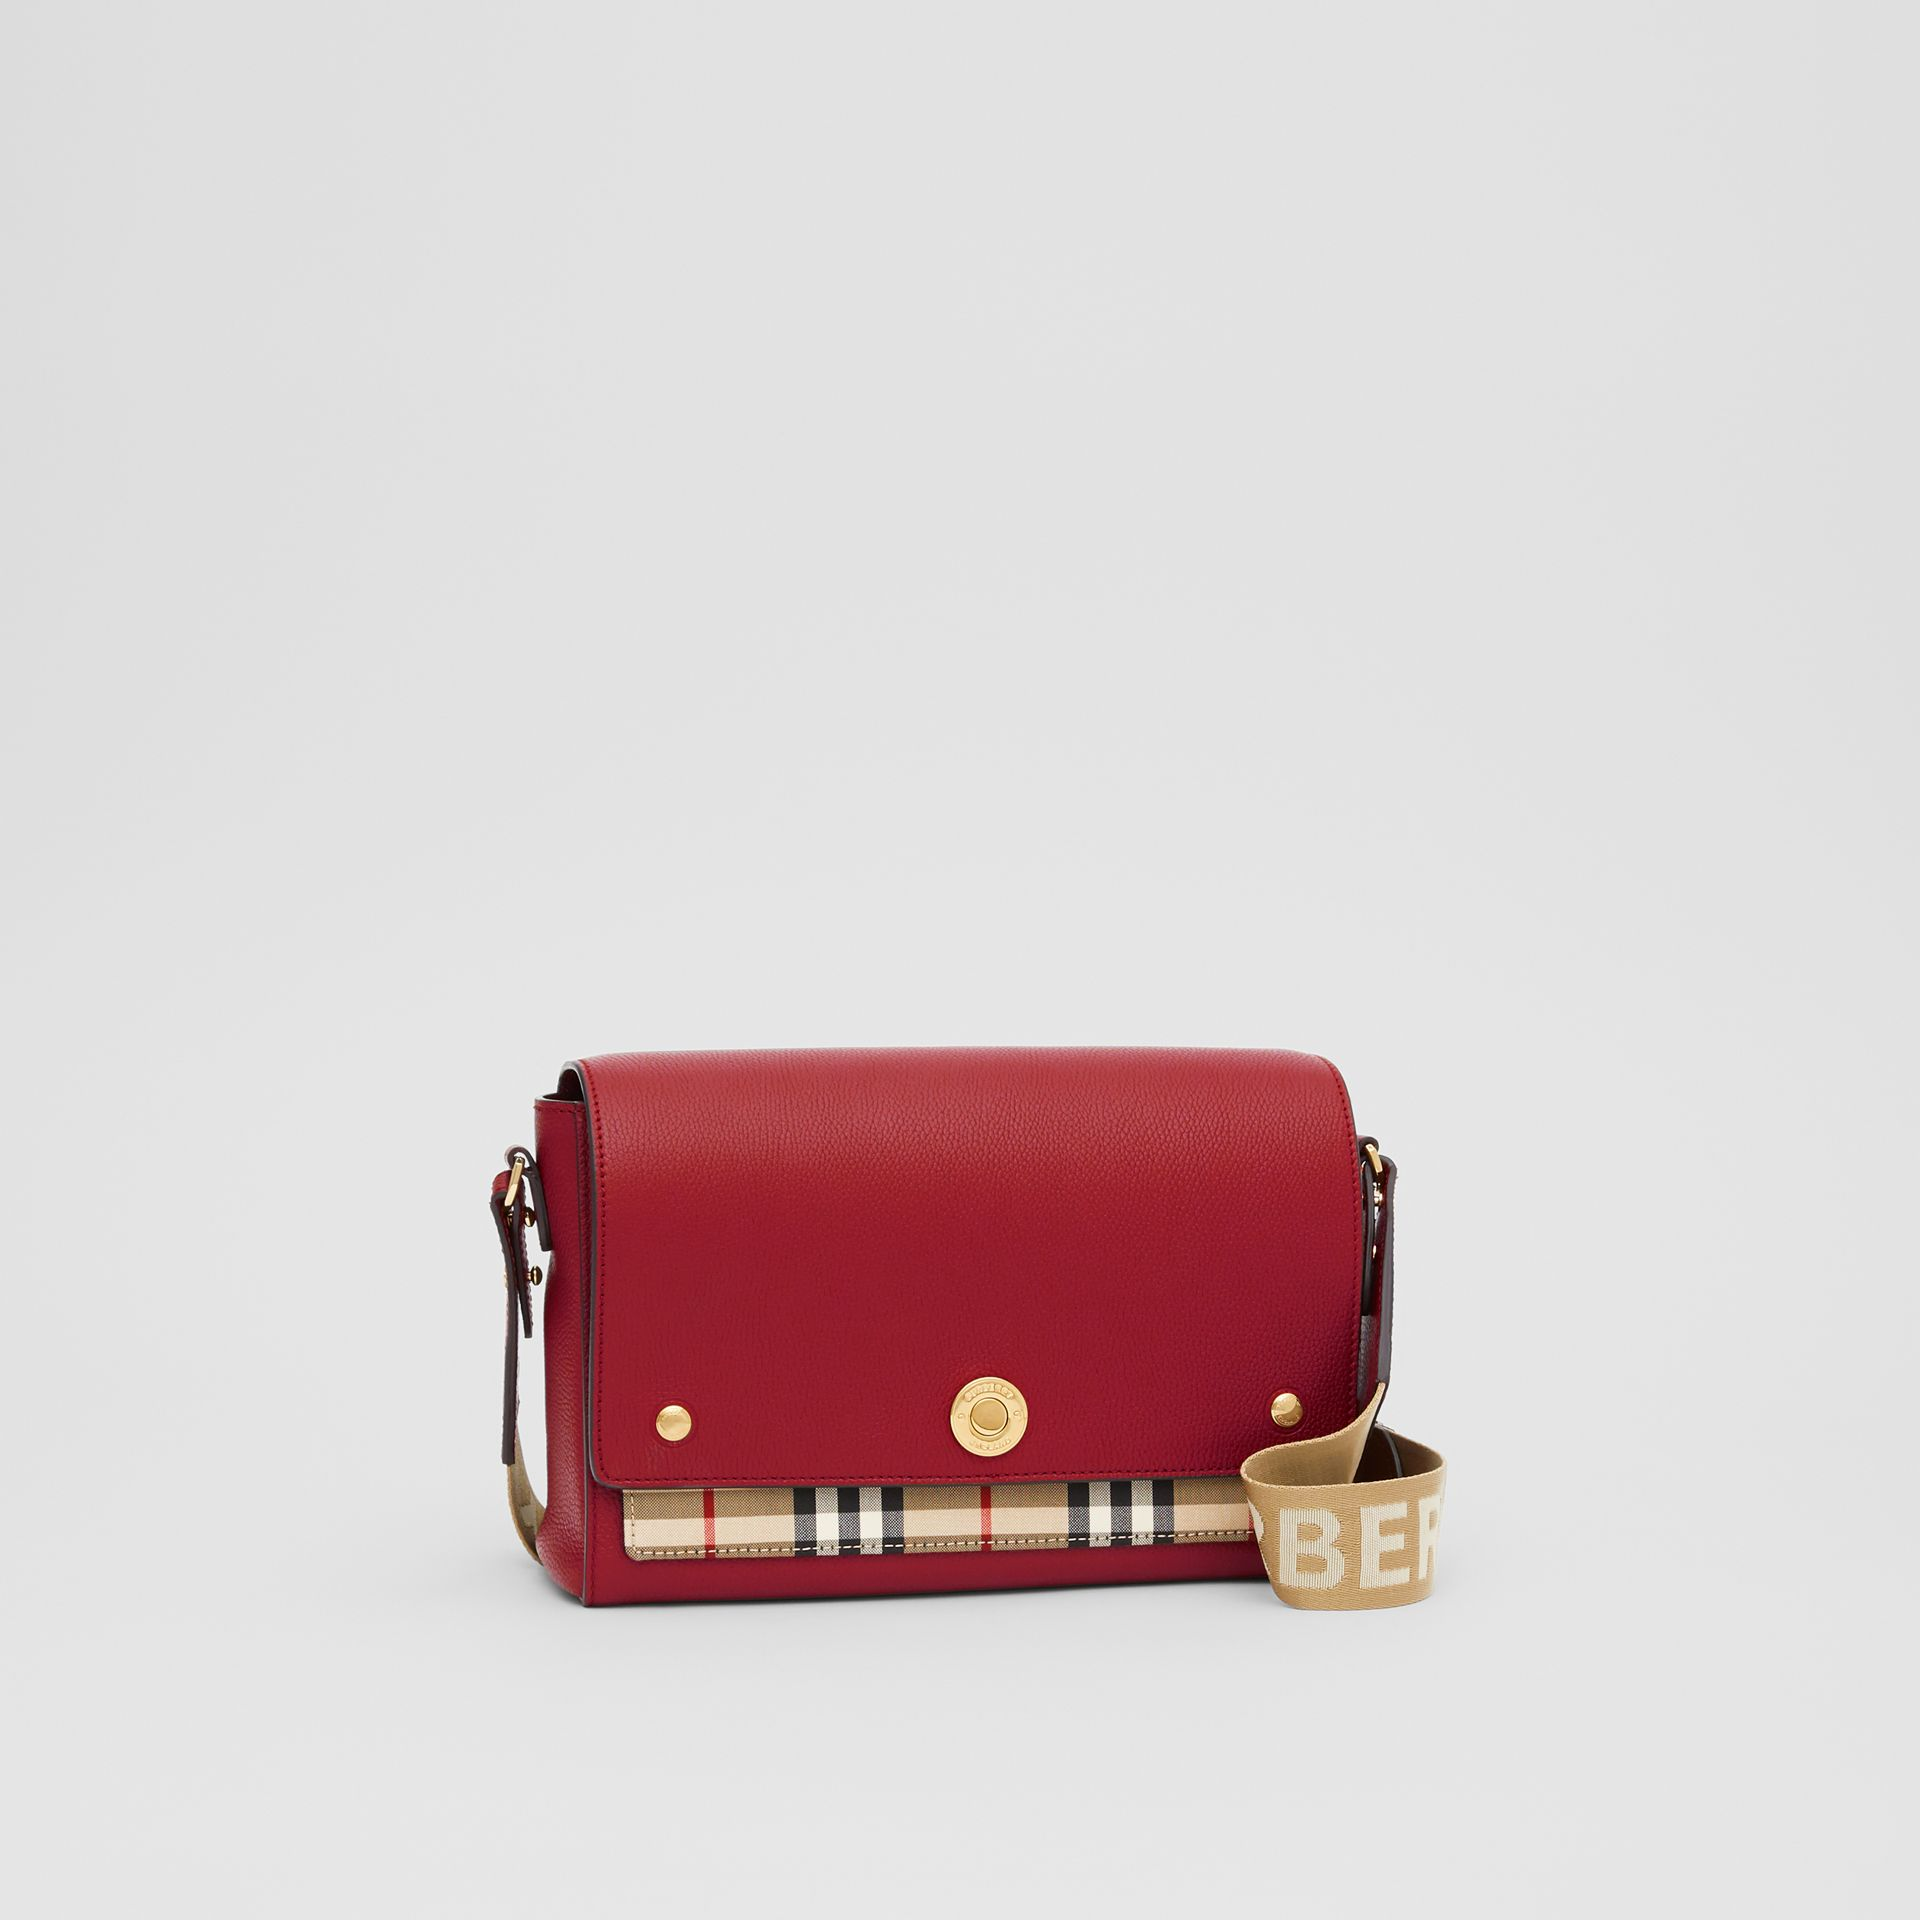 Leather and Vintage Check Note Crossbody Bag in Dark Carmine - Women | Burberry United States - gallery image 6